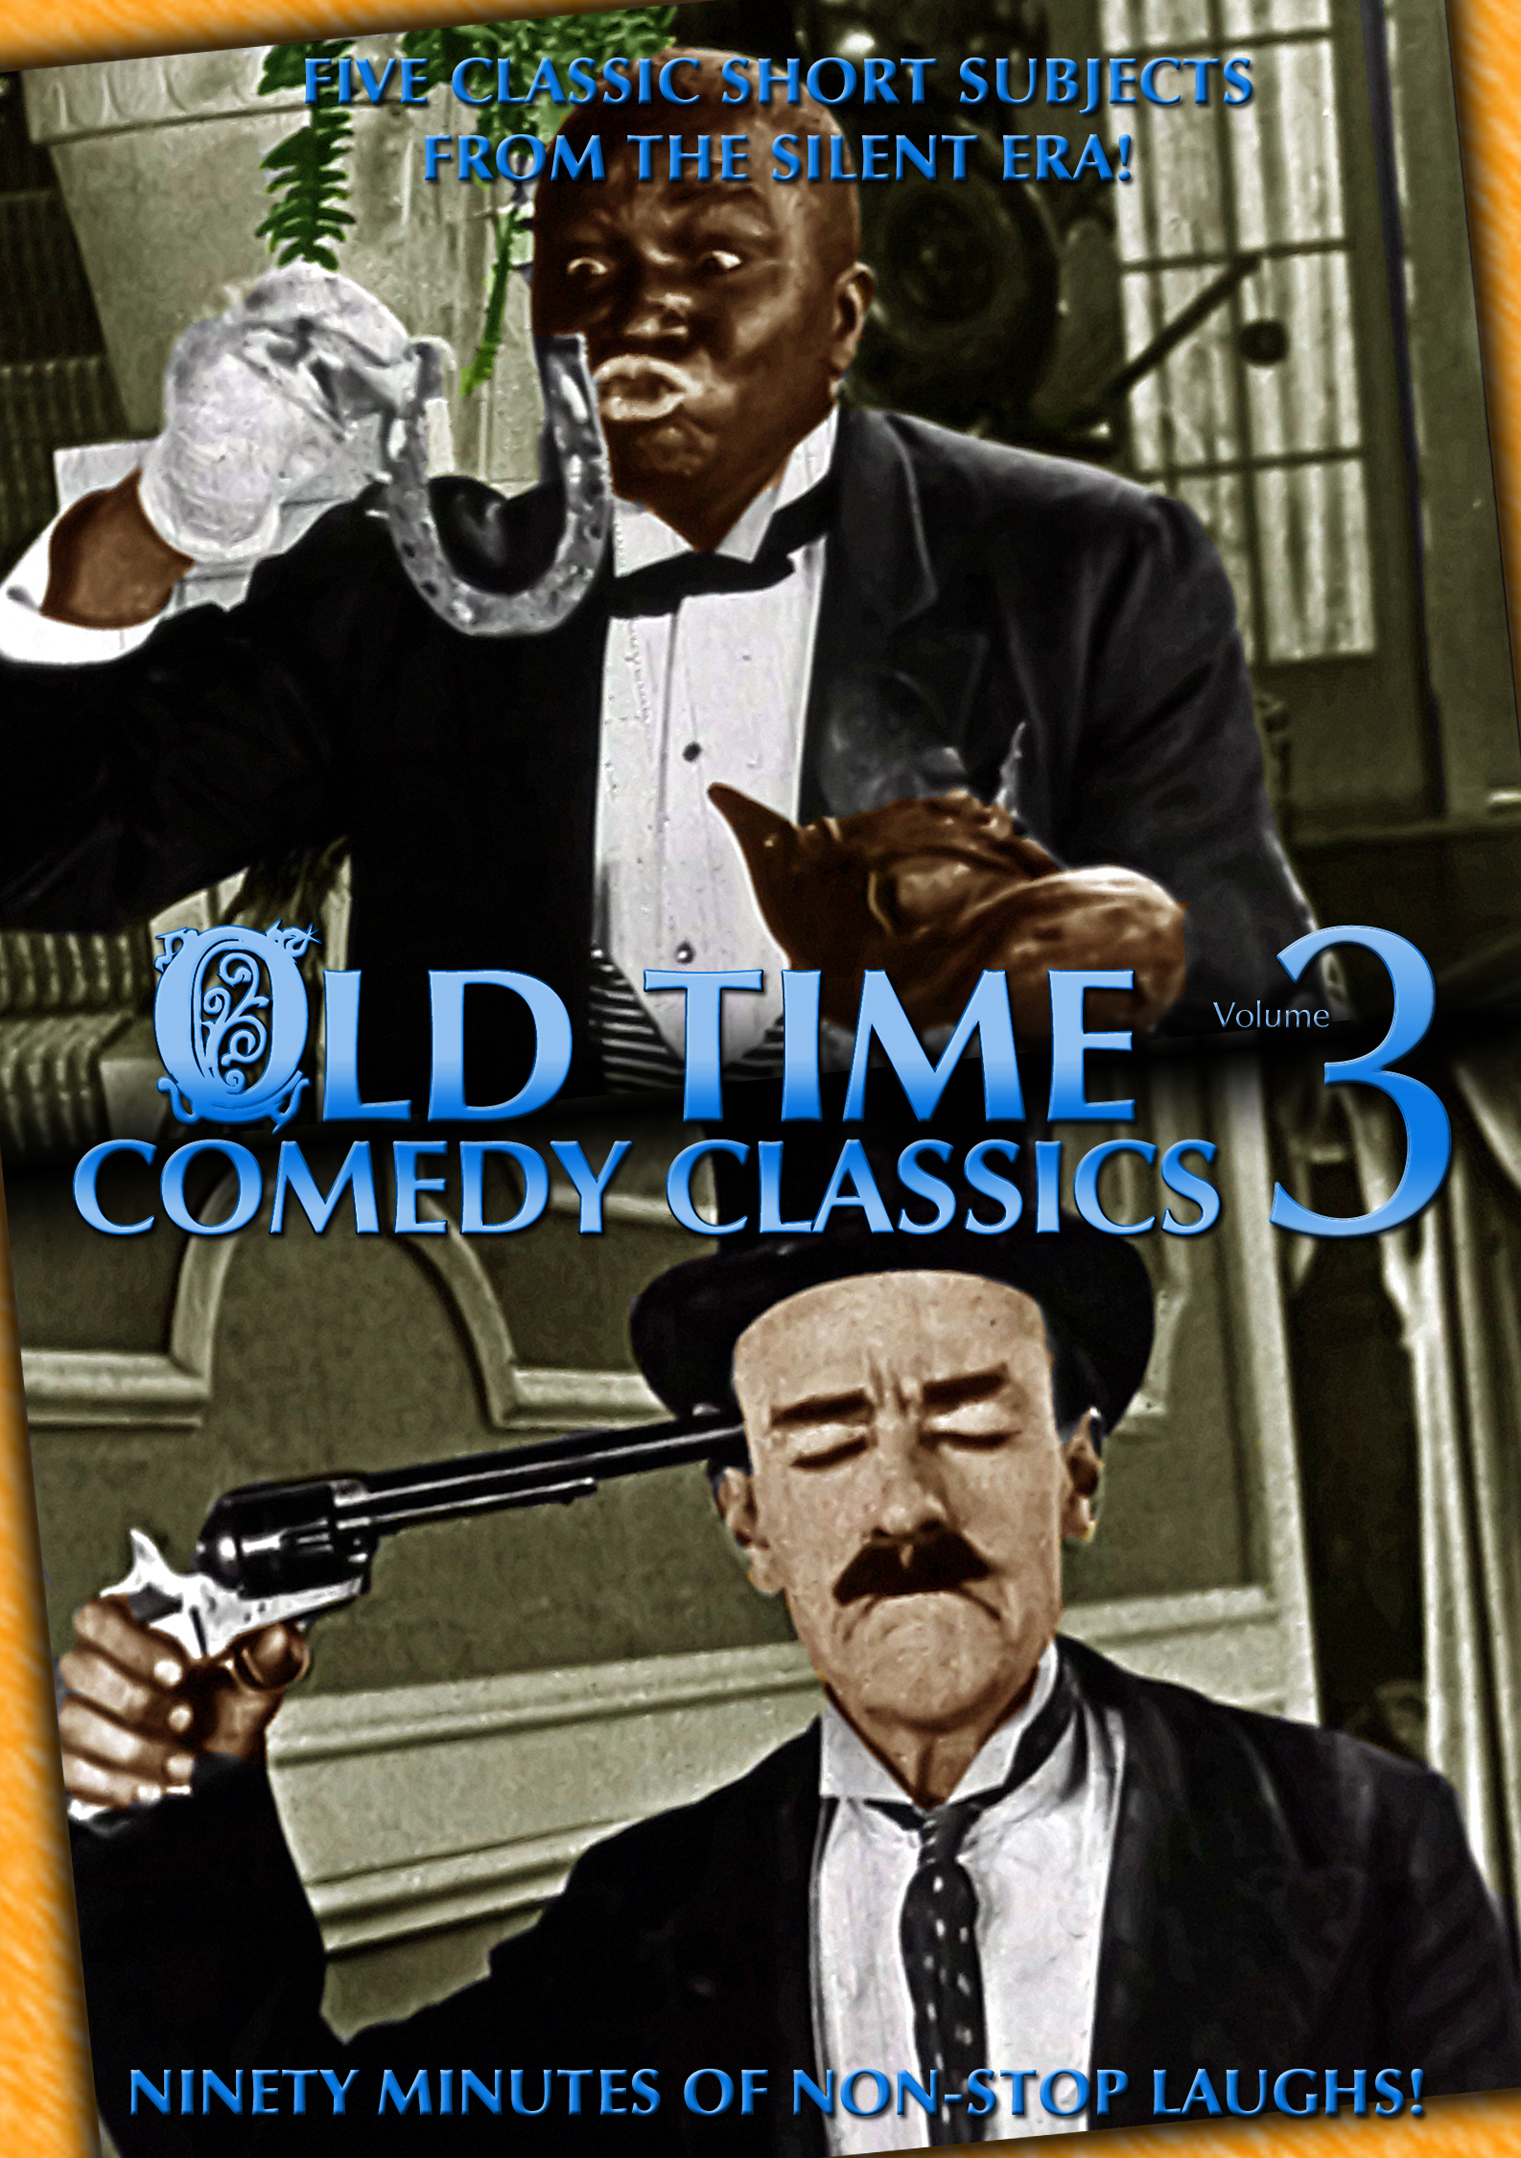 Old Time Comedy Classics Volume 3